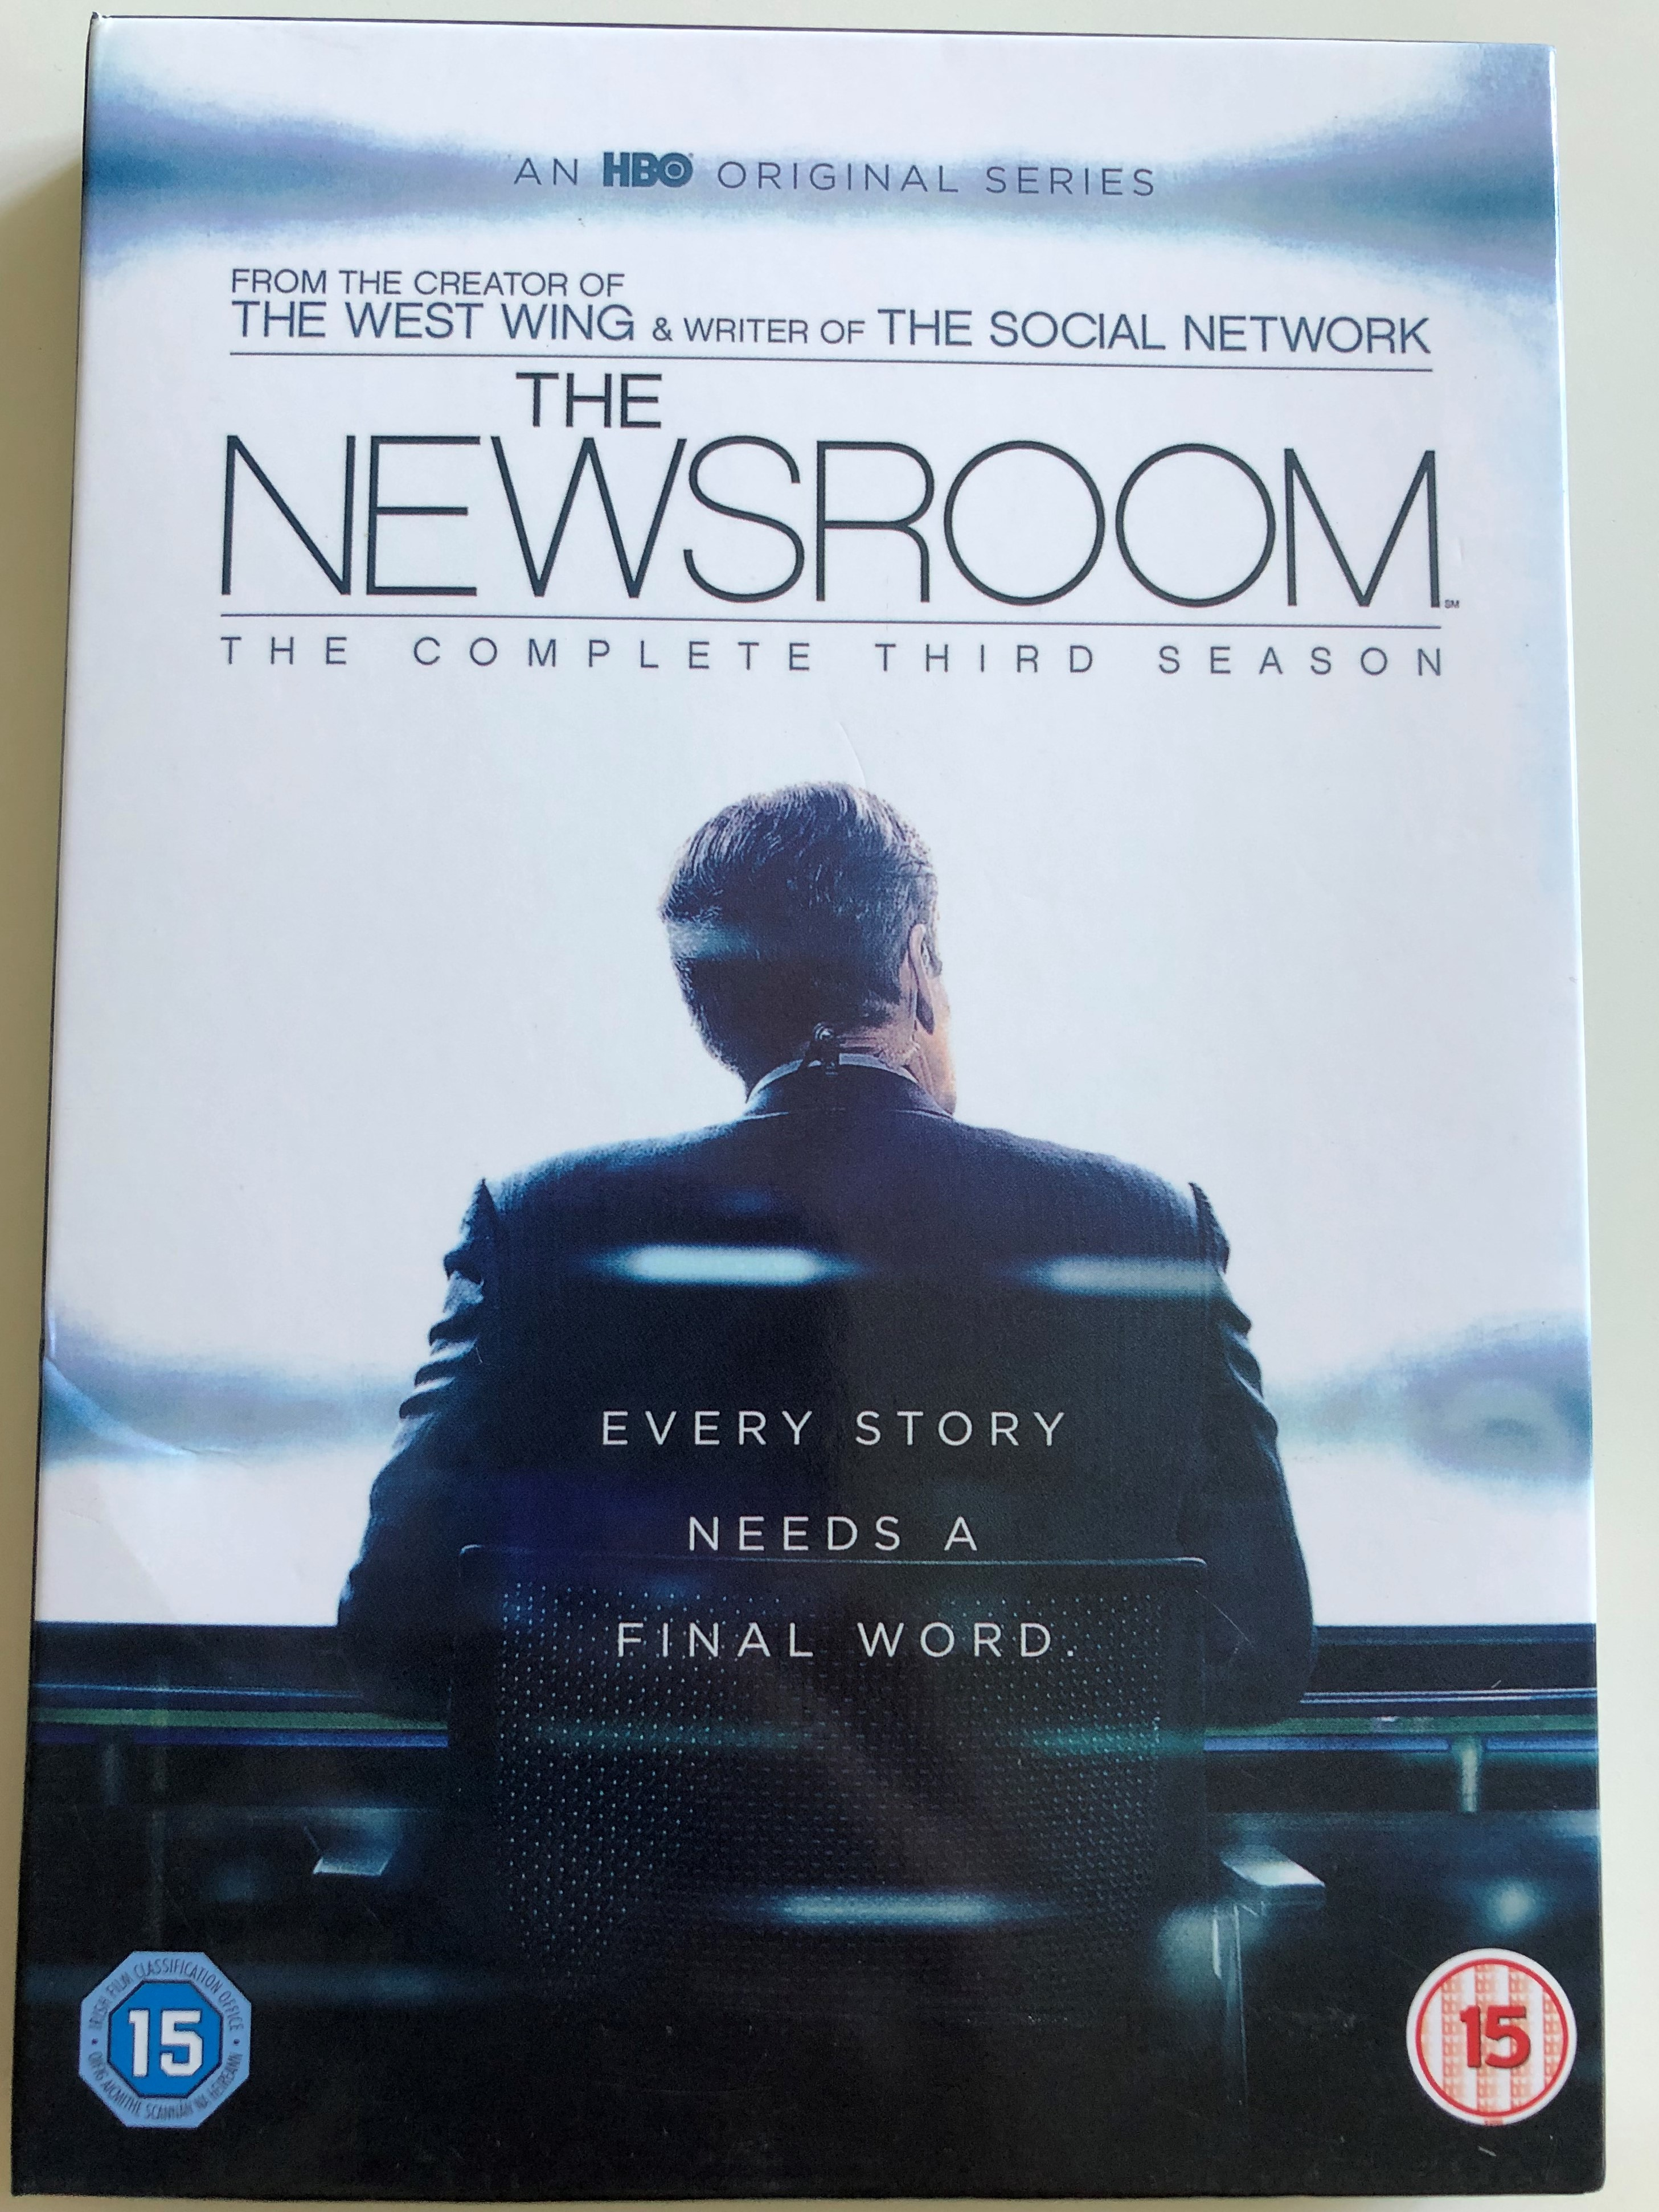 -the-newsroom-dvd-2015-the-complete-third-season-created-by-aaron-sorkin-a-hbo-original-series-every-story-needs-a-final-word-1-.jpg